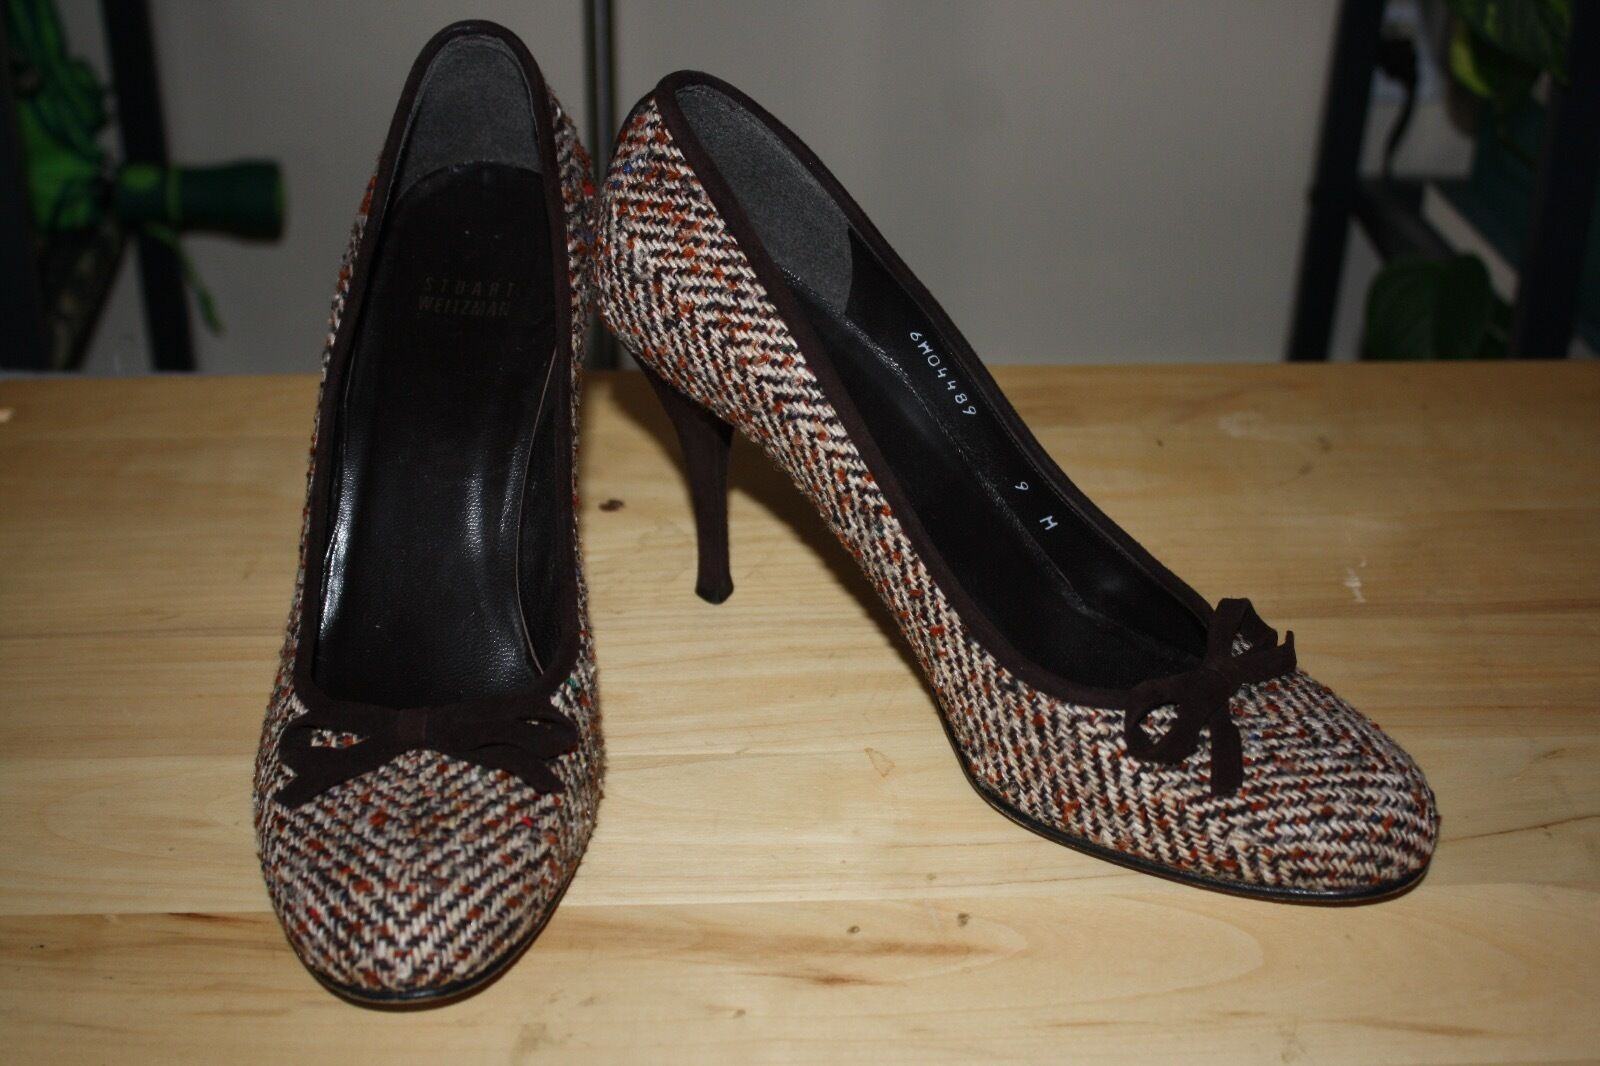 Stuart Weitzman 9 M Brown Tweed Stilettos High Heel Velvet Bow Rounded Toe Suede